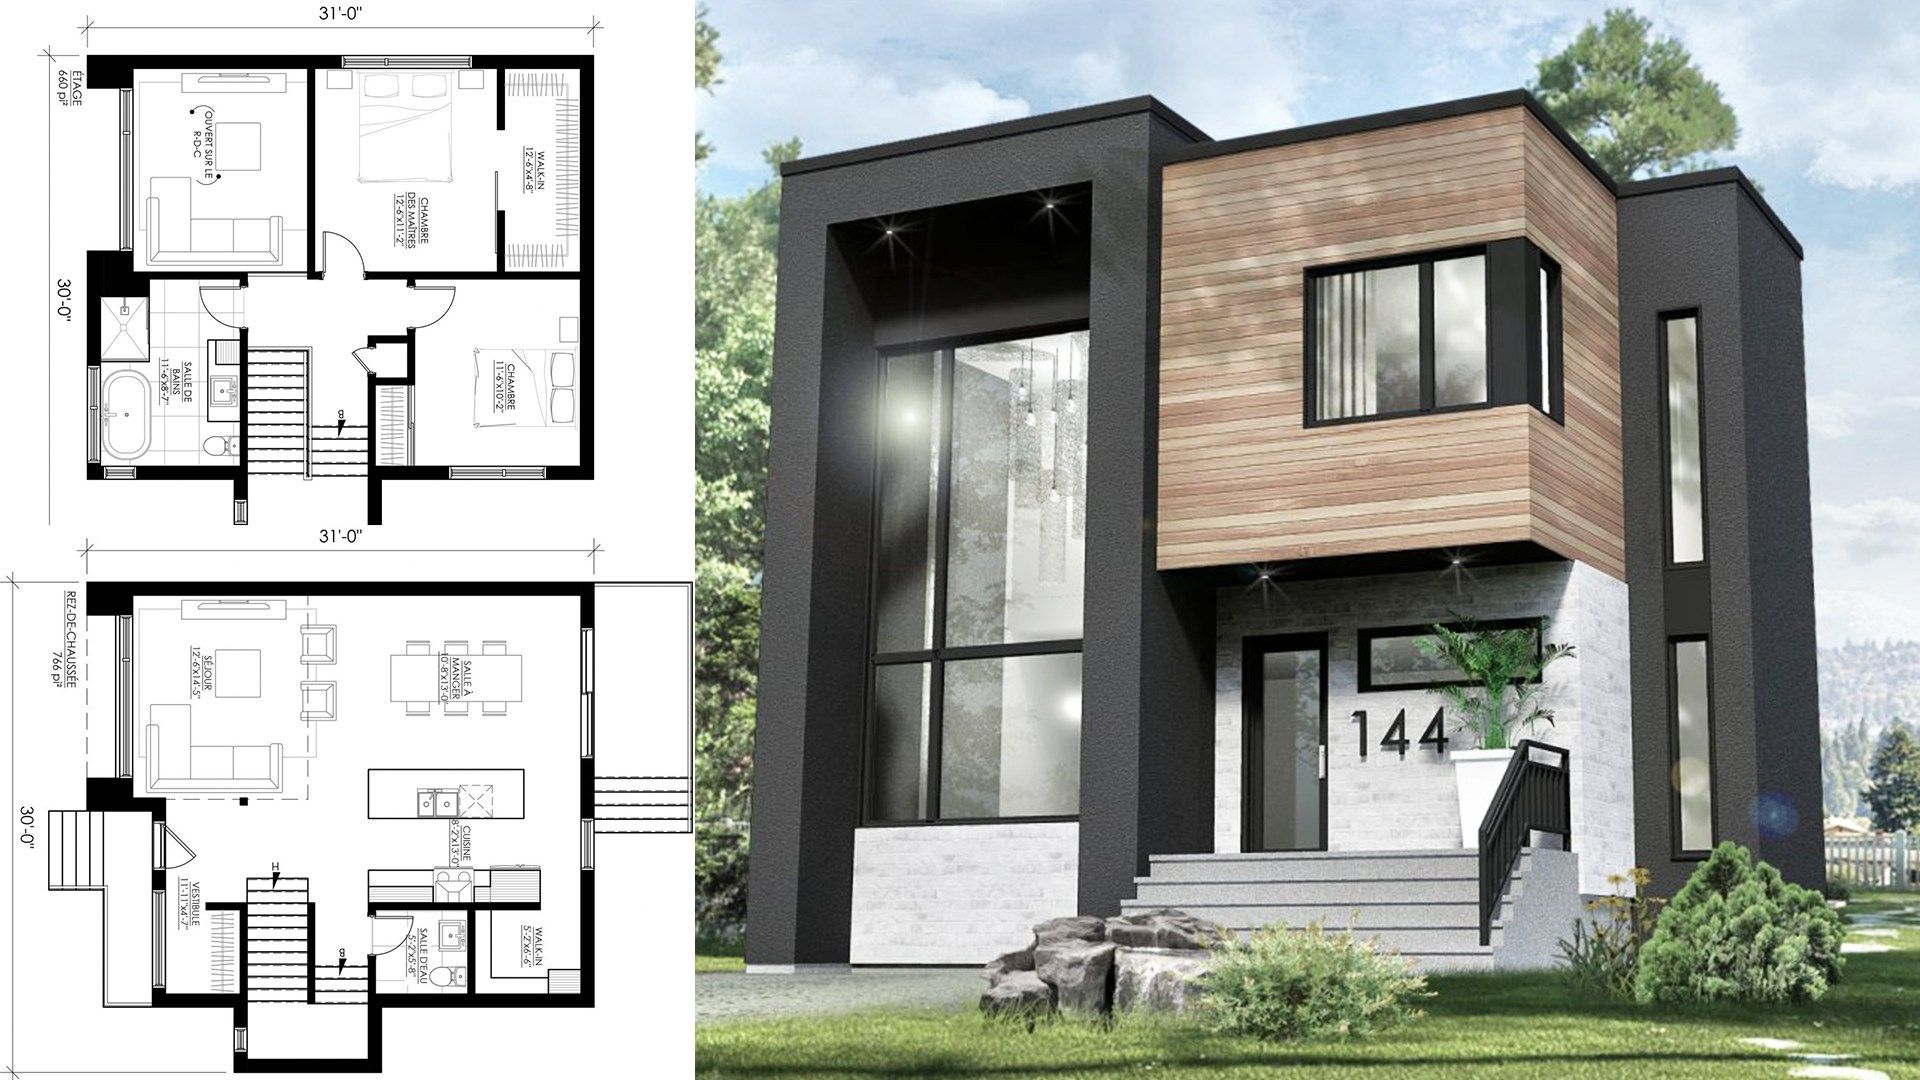 Small Modern House 30x31 With Interior Small Modern House Plans Small Modern Home Modern House Floor Plans